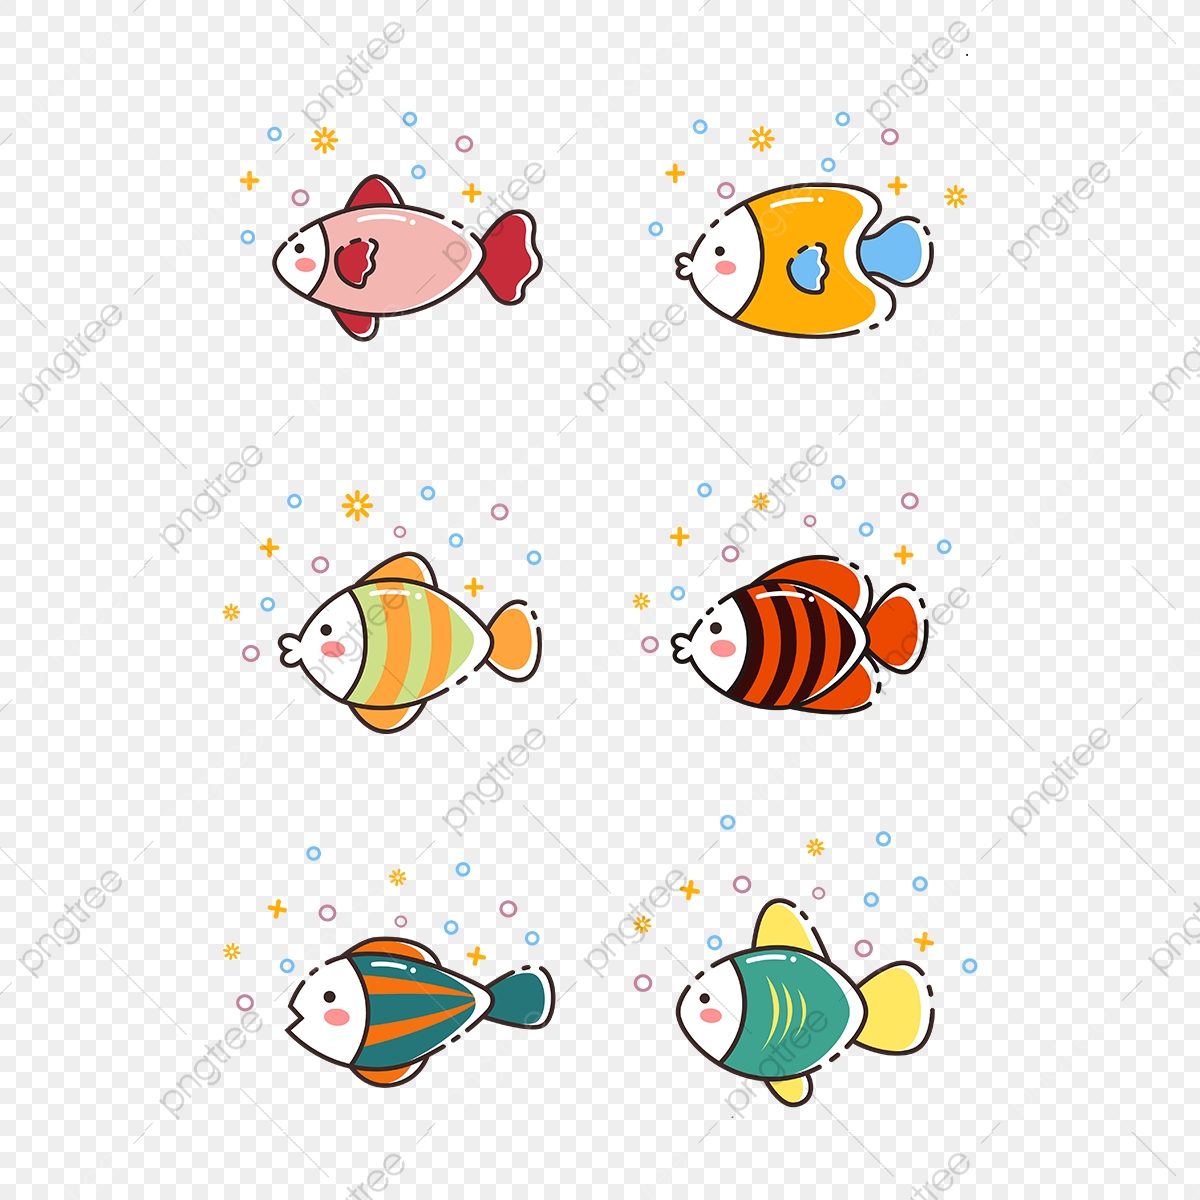 Mbe icon creative small. Free copyright free clipart vector for commercial use